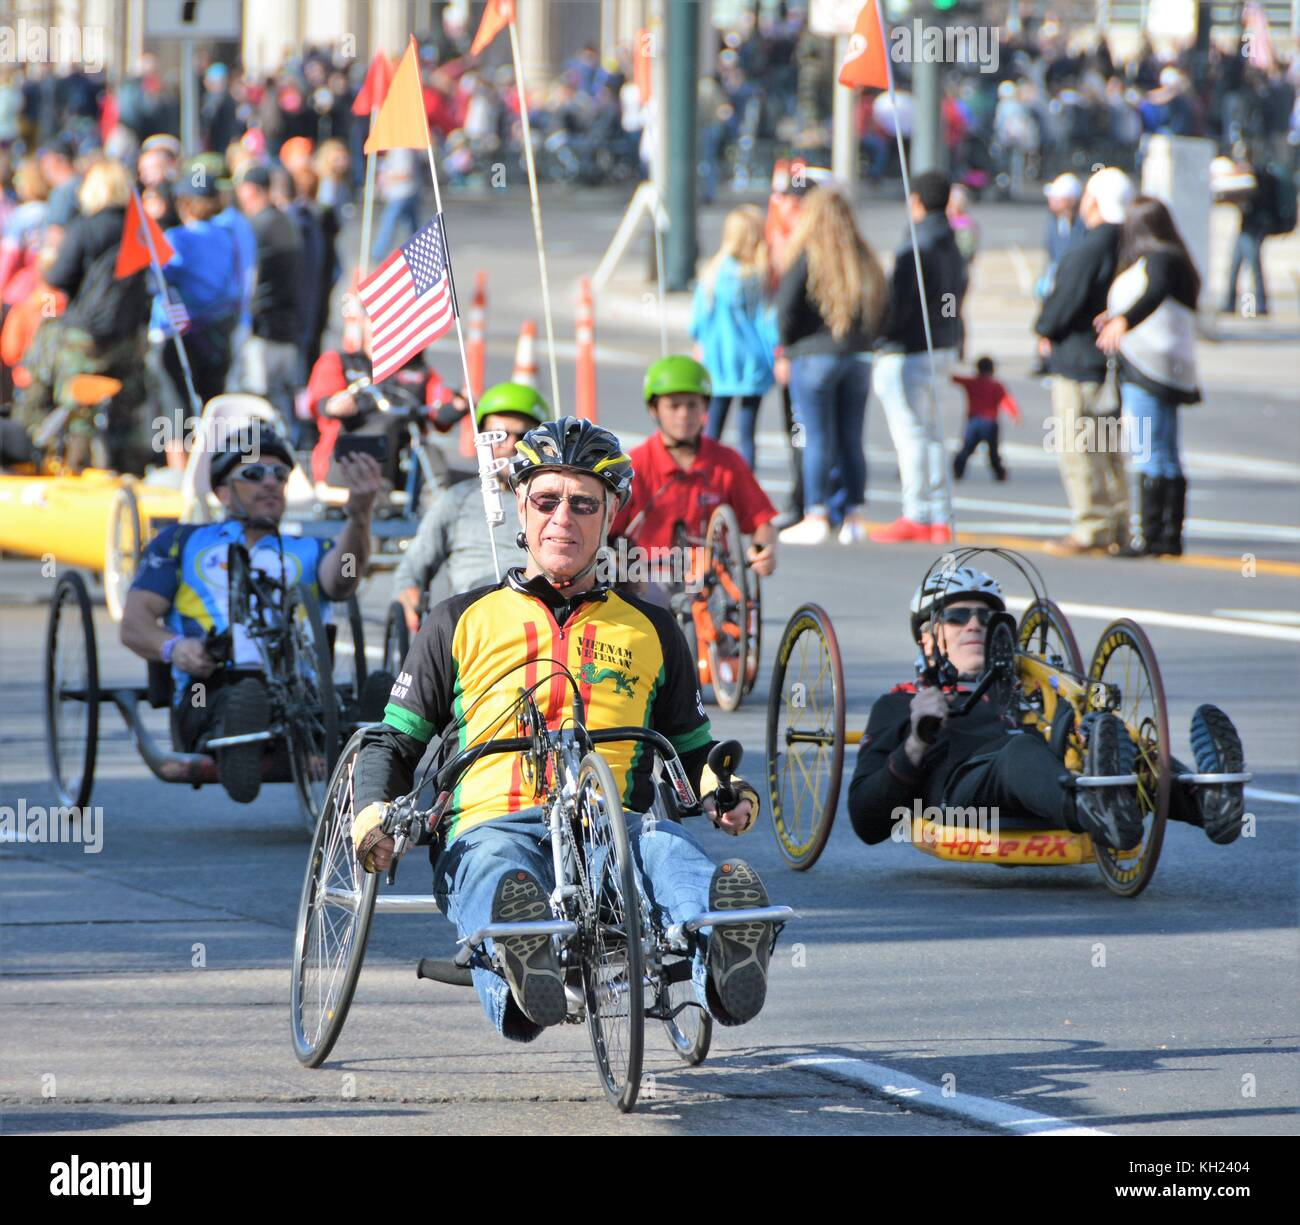 Handicapped Bicyclists - Stock Image